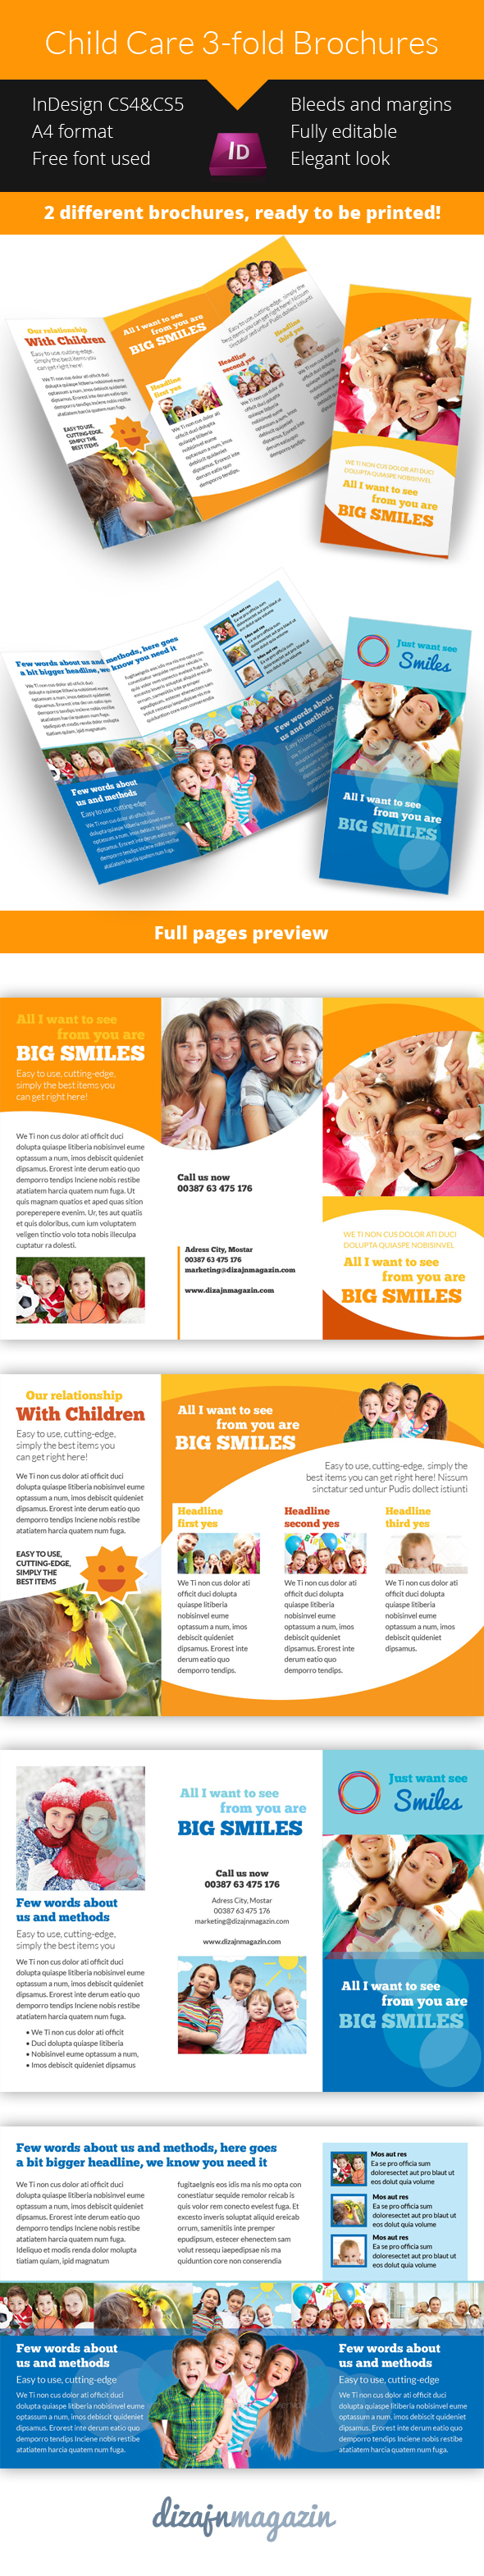 child care brochure on behance